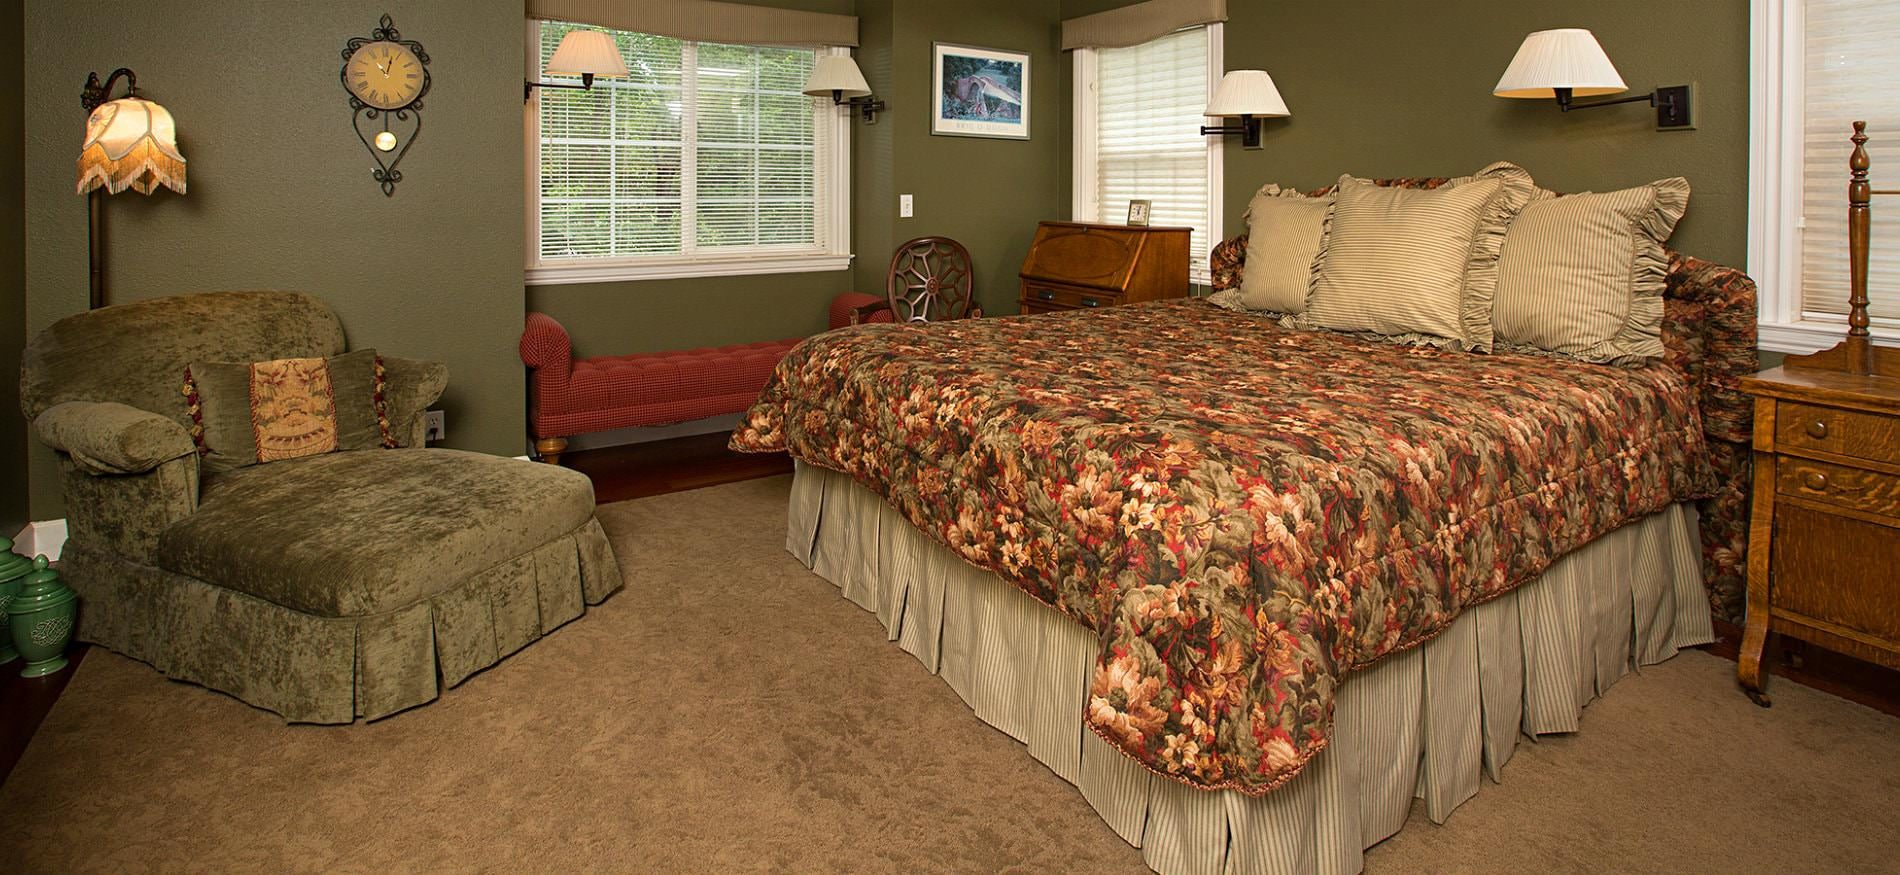 Sage green guest room with tan rug, floral covered bed, green upholstered chair, sconce lighting and three windows